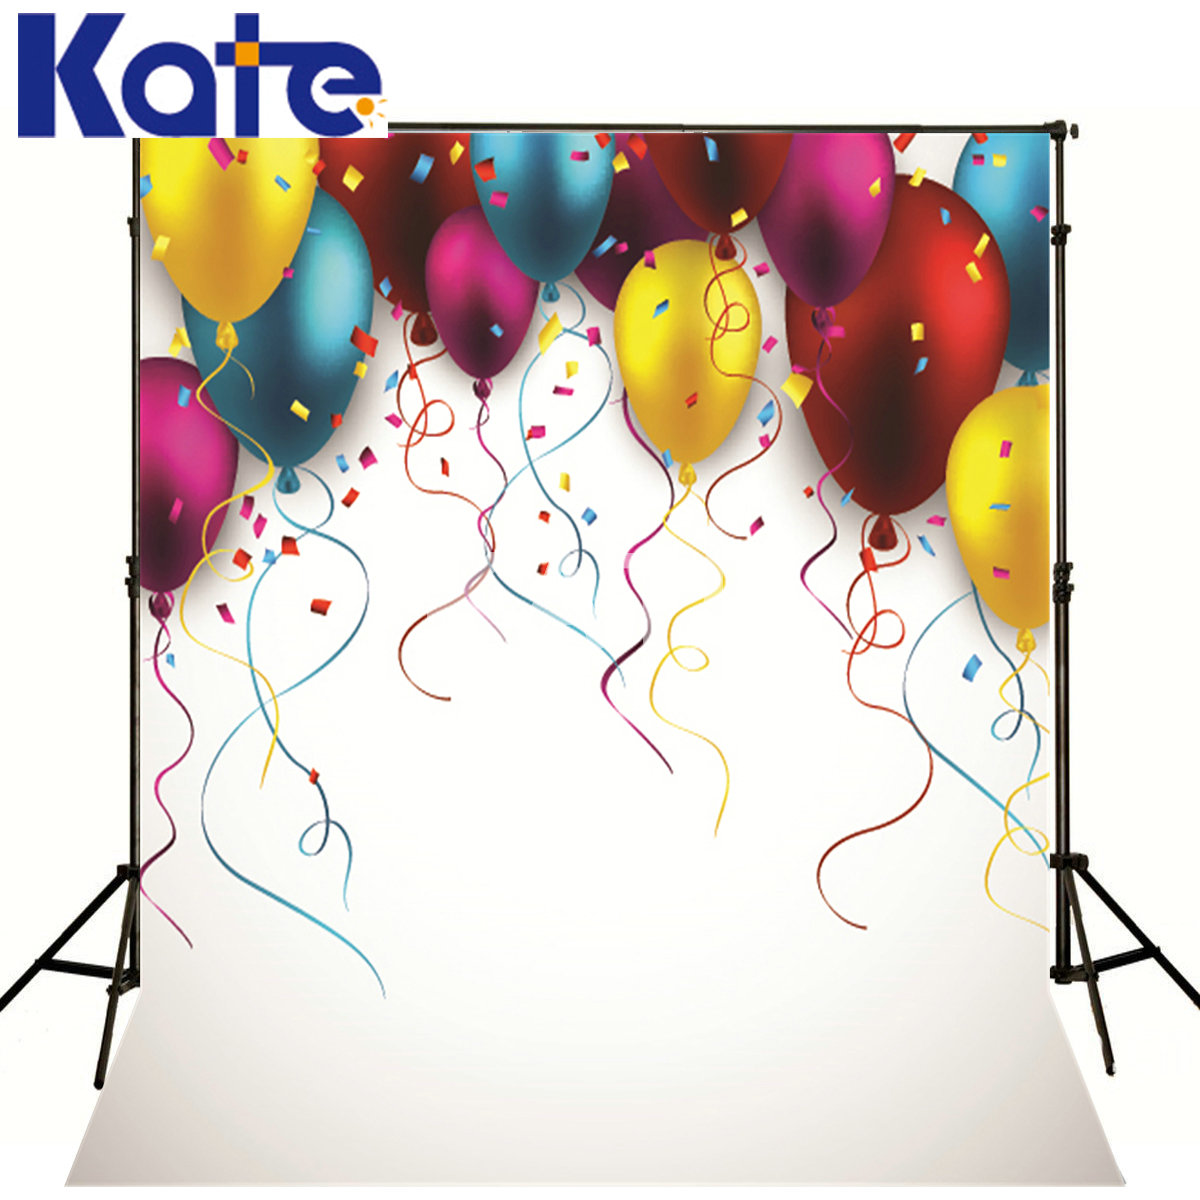 Kate Backdrops Photo Studio Props White Background Colorful Balloons Kate Background Backdrop Background For Photo our kate